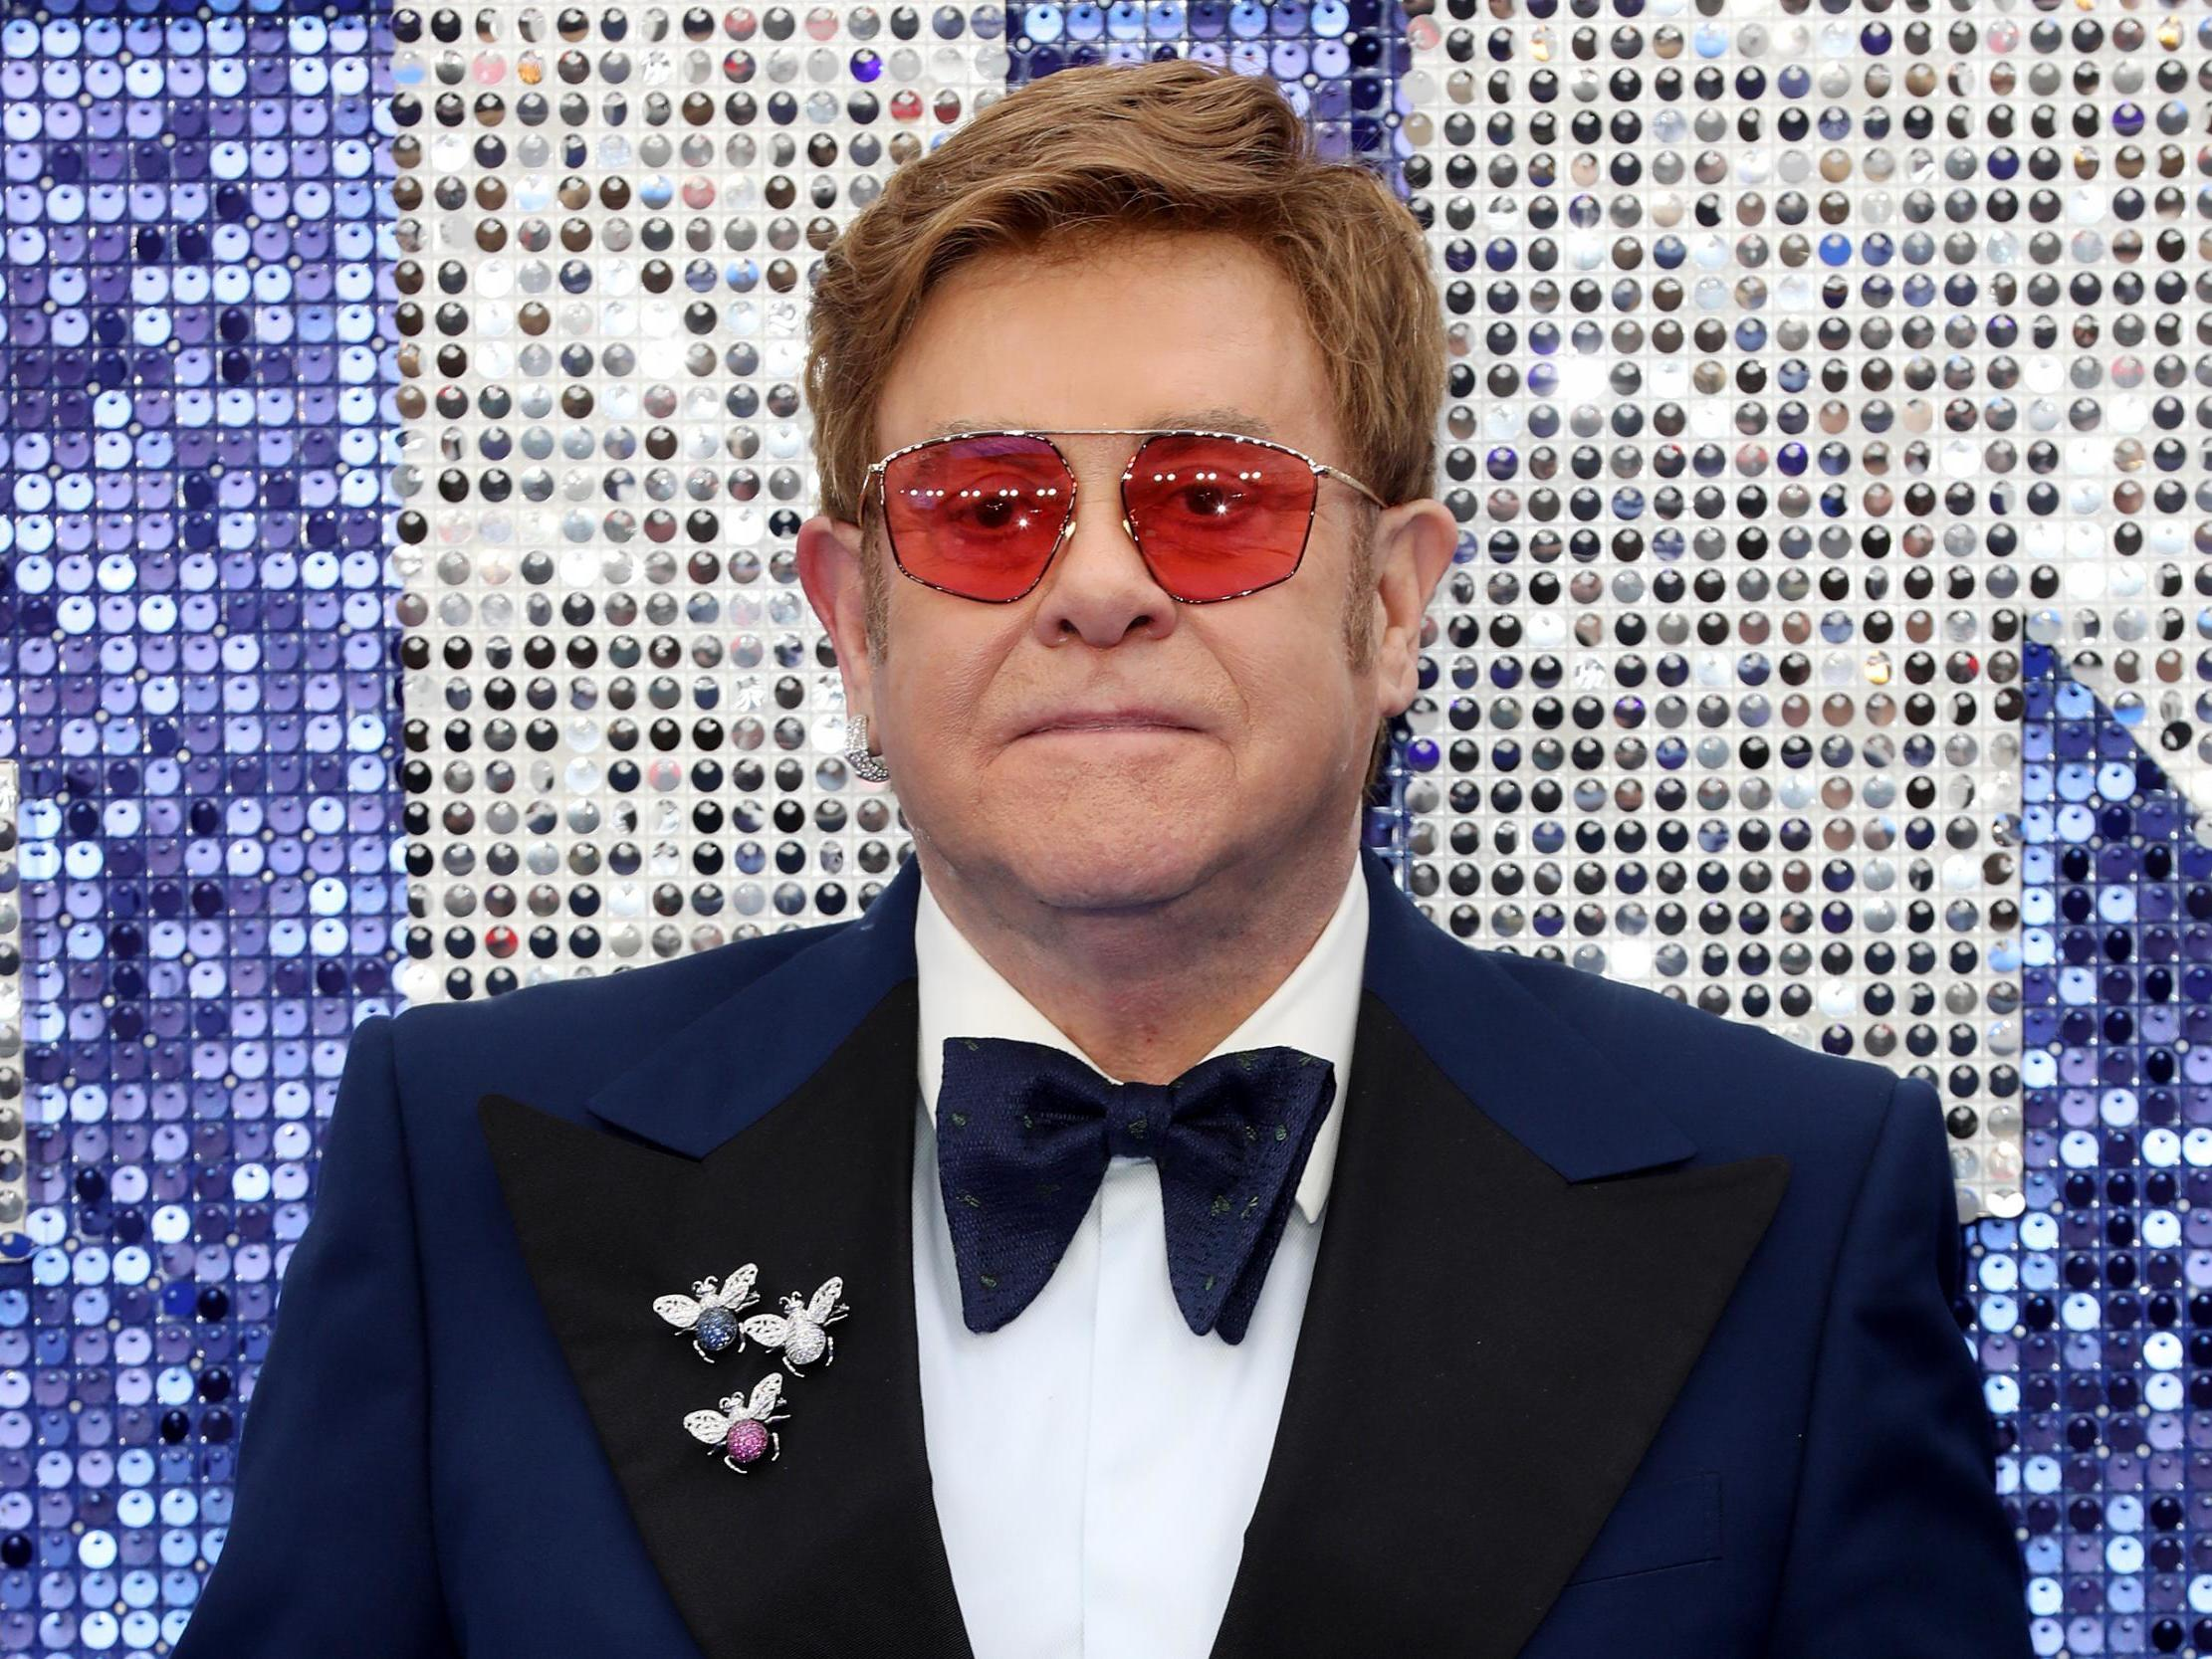 Elton John Christmas Outfit.Elton John Latest News Breaking Stories And Comment The